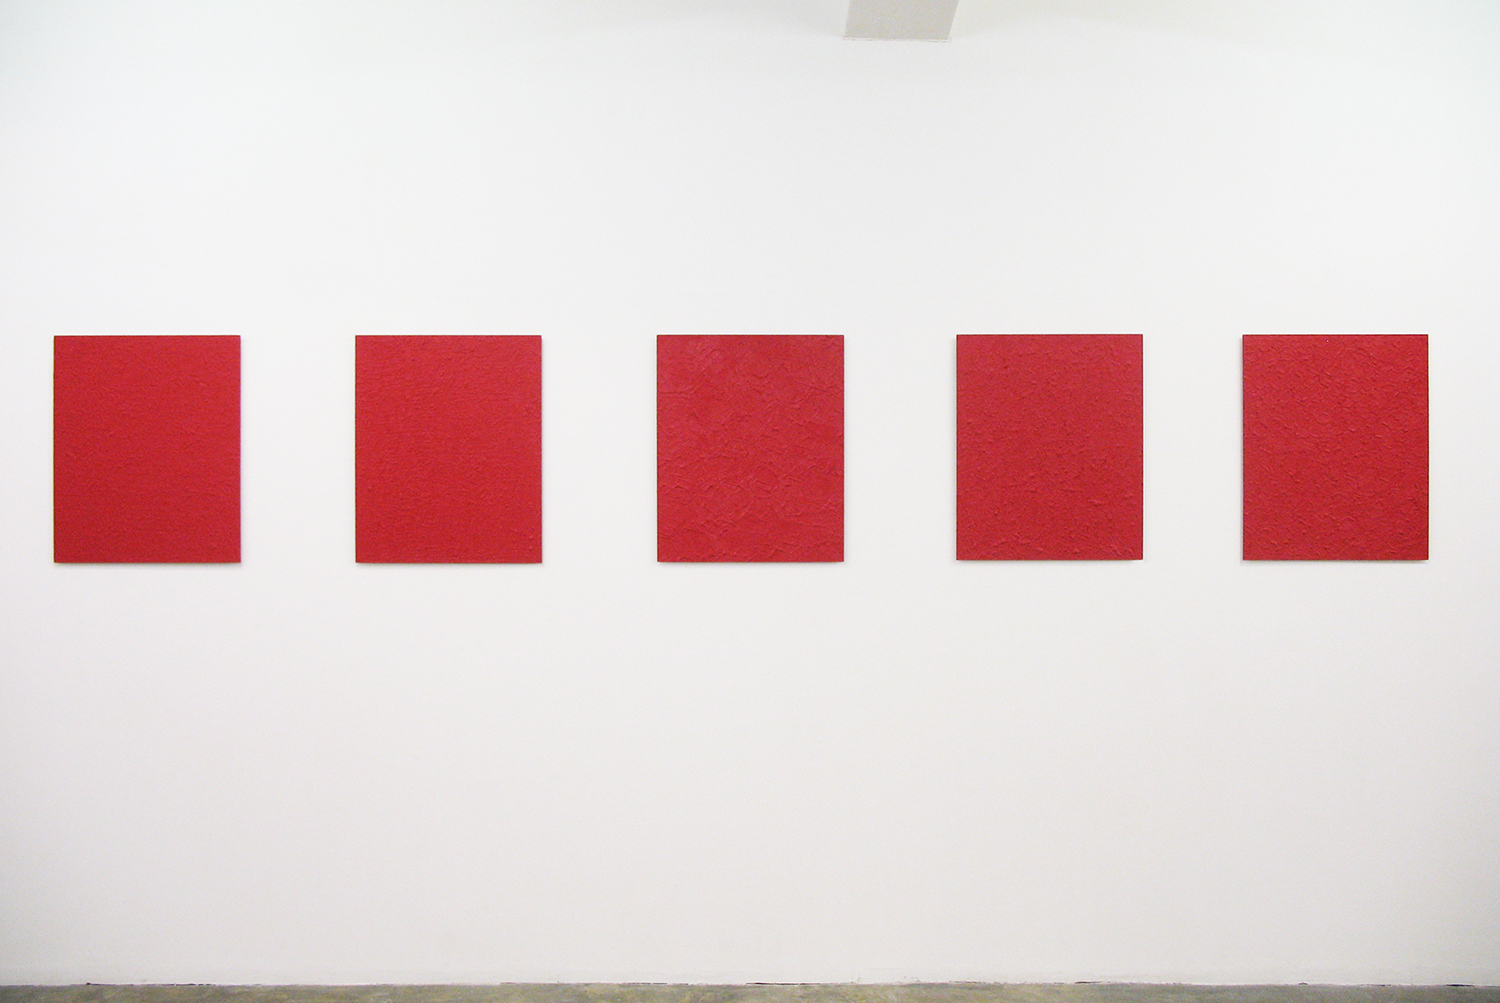 Installation View: Untitled - Rose Red (left 2 pieces)| Oil on aluminum|606 x 500 mm each